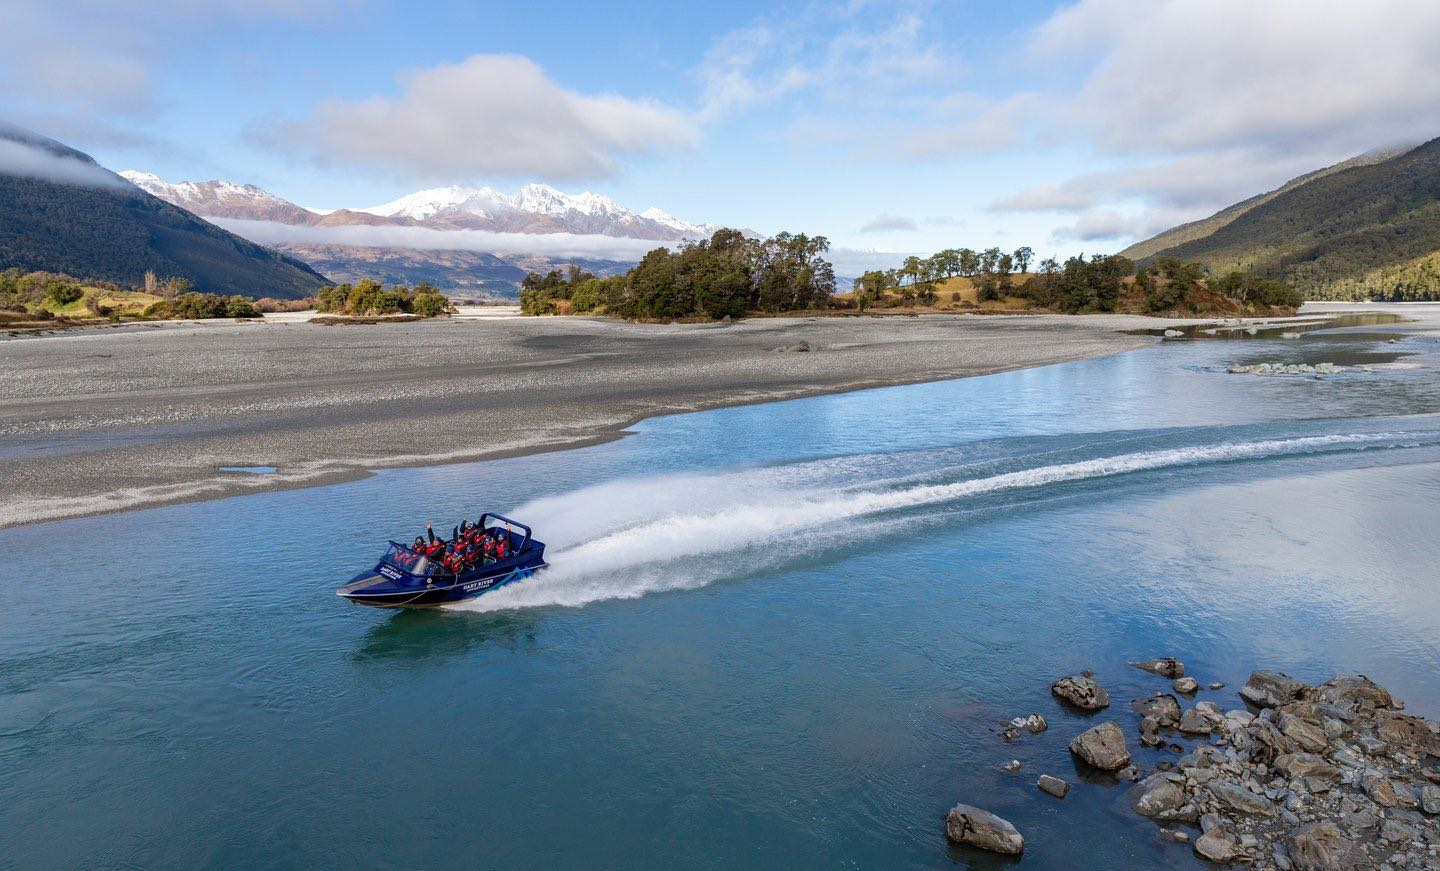 A Dart River Jet Boat zipping along the Dart River at speed with mountains in the background